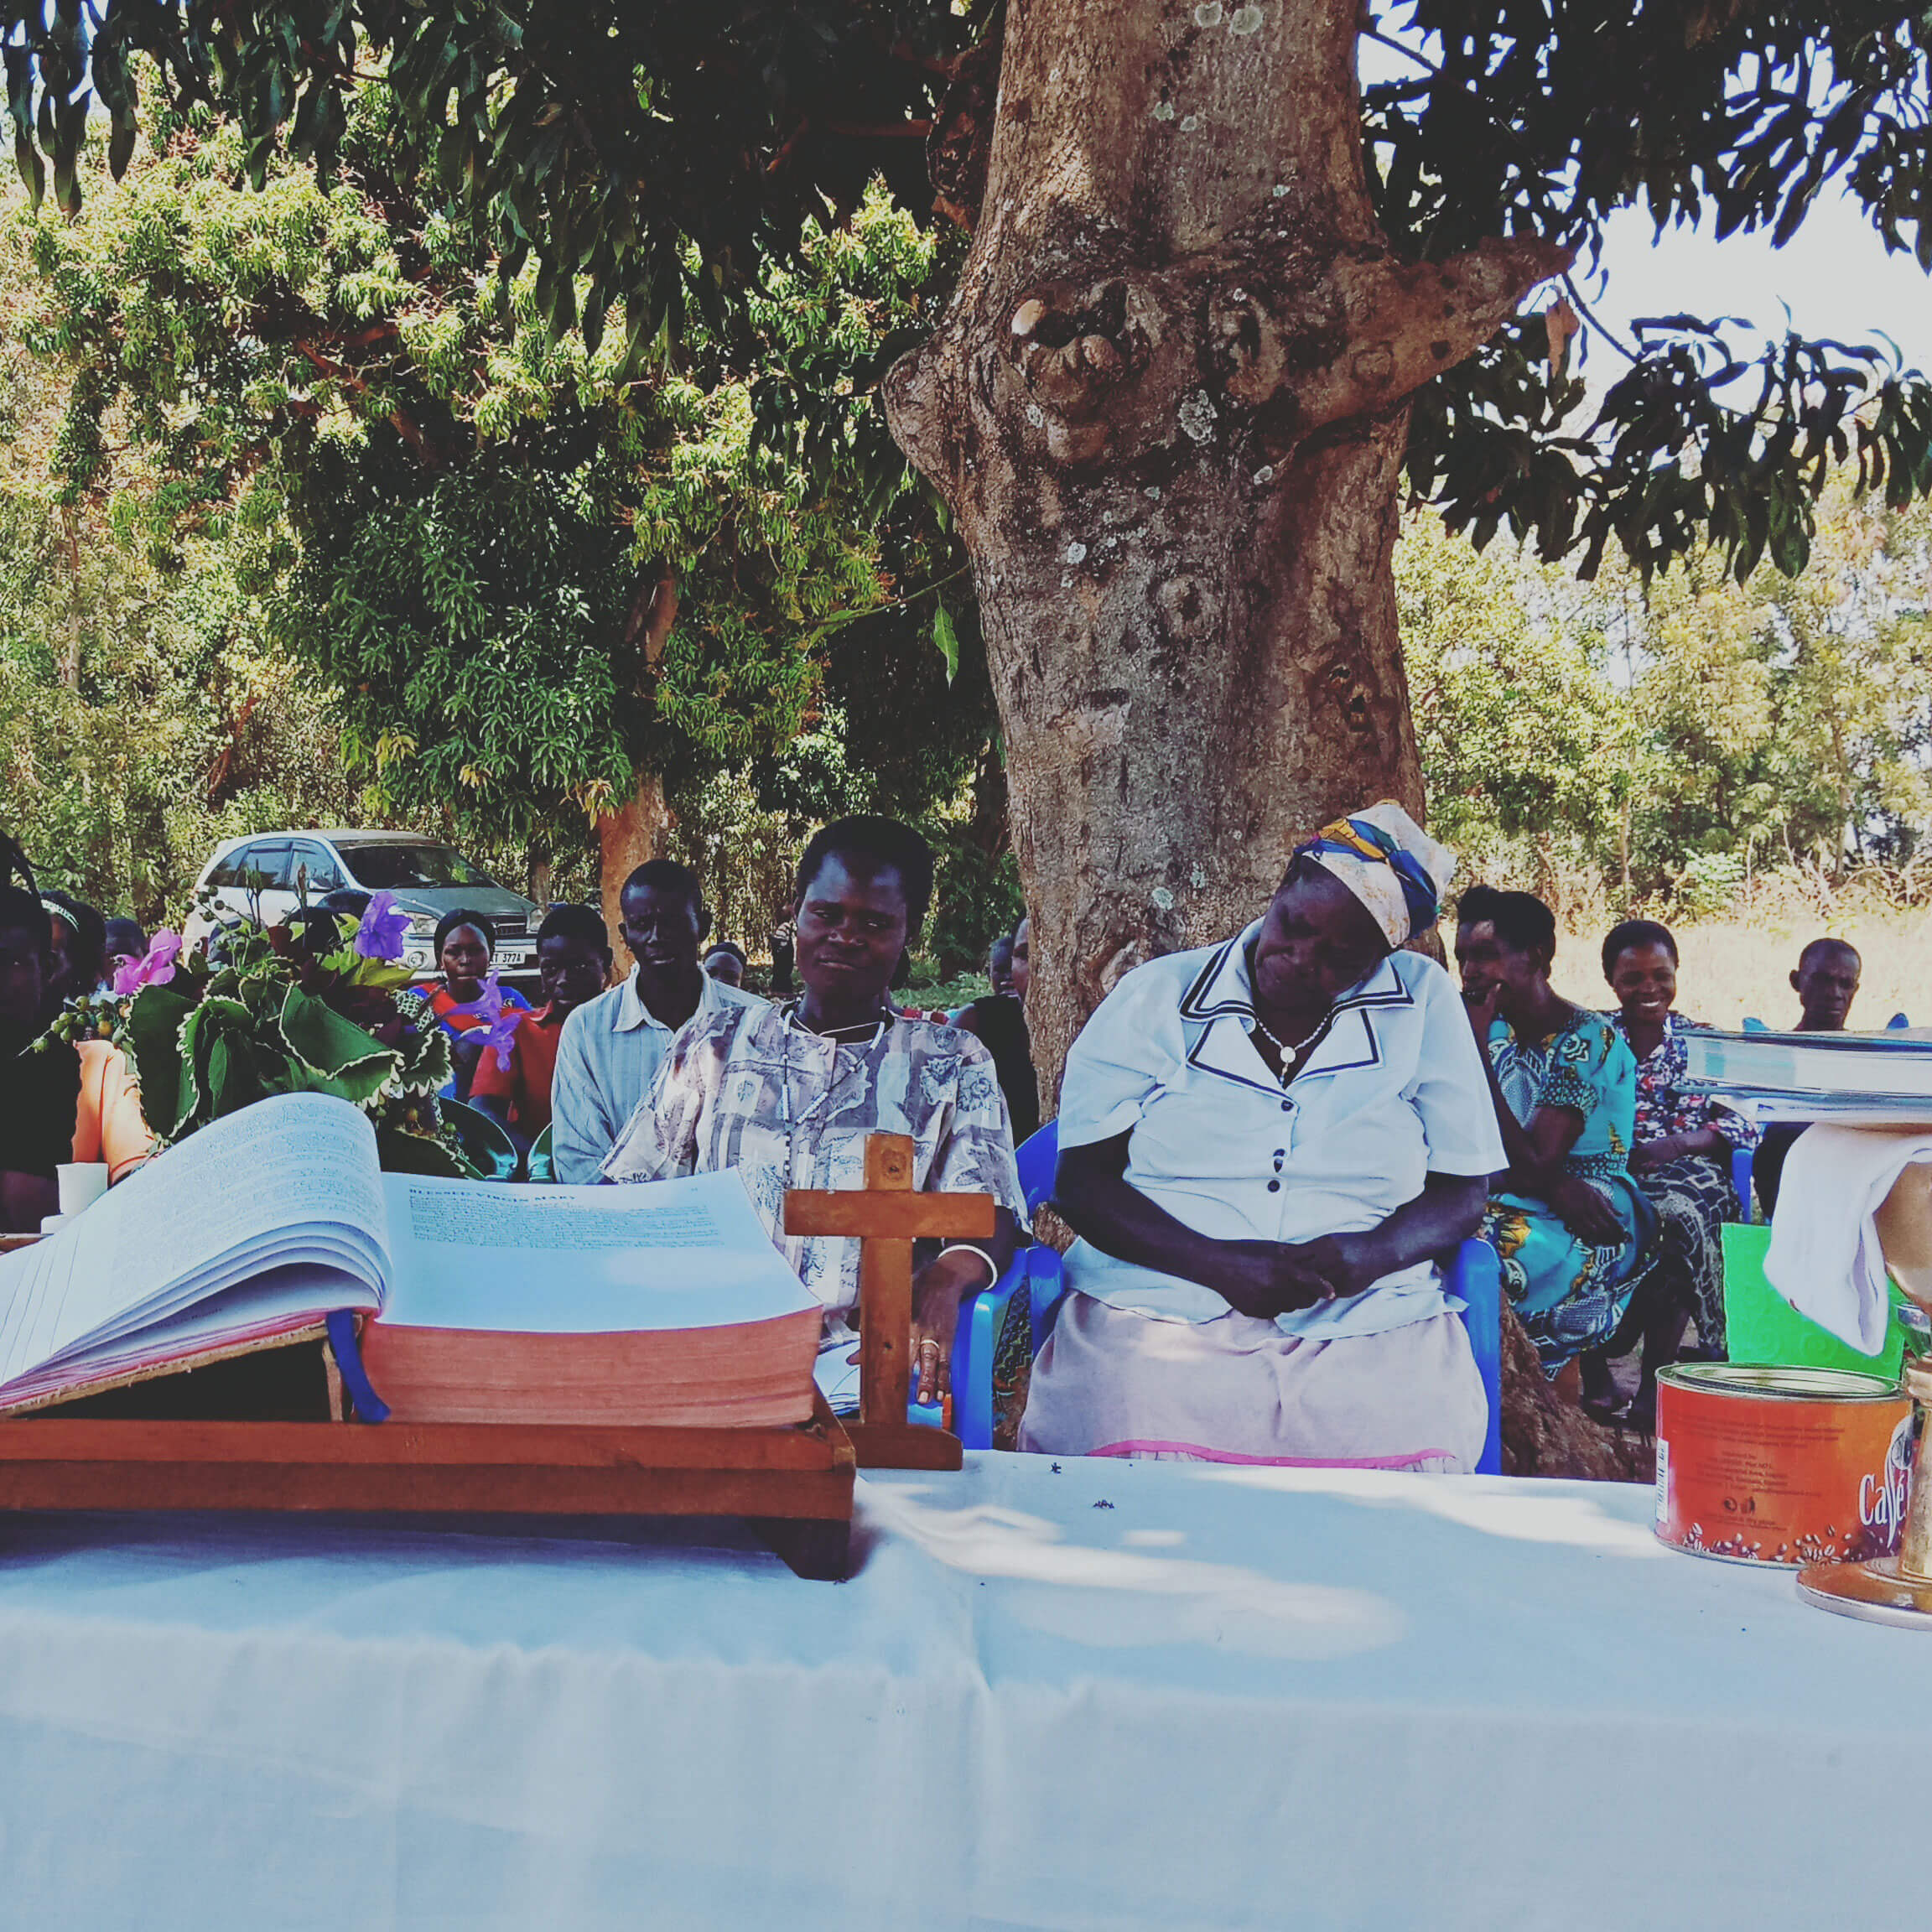 Our brothers and sisters in Kiyamwinula, Uganda celebrate Mass under the mango tree.